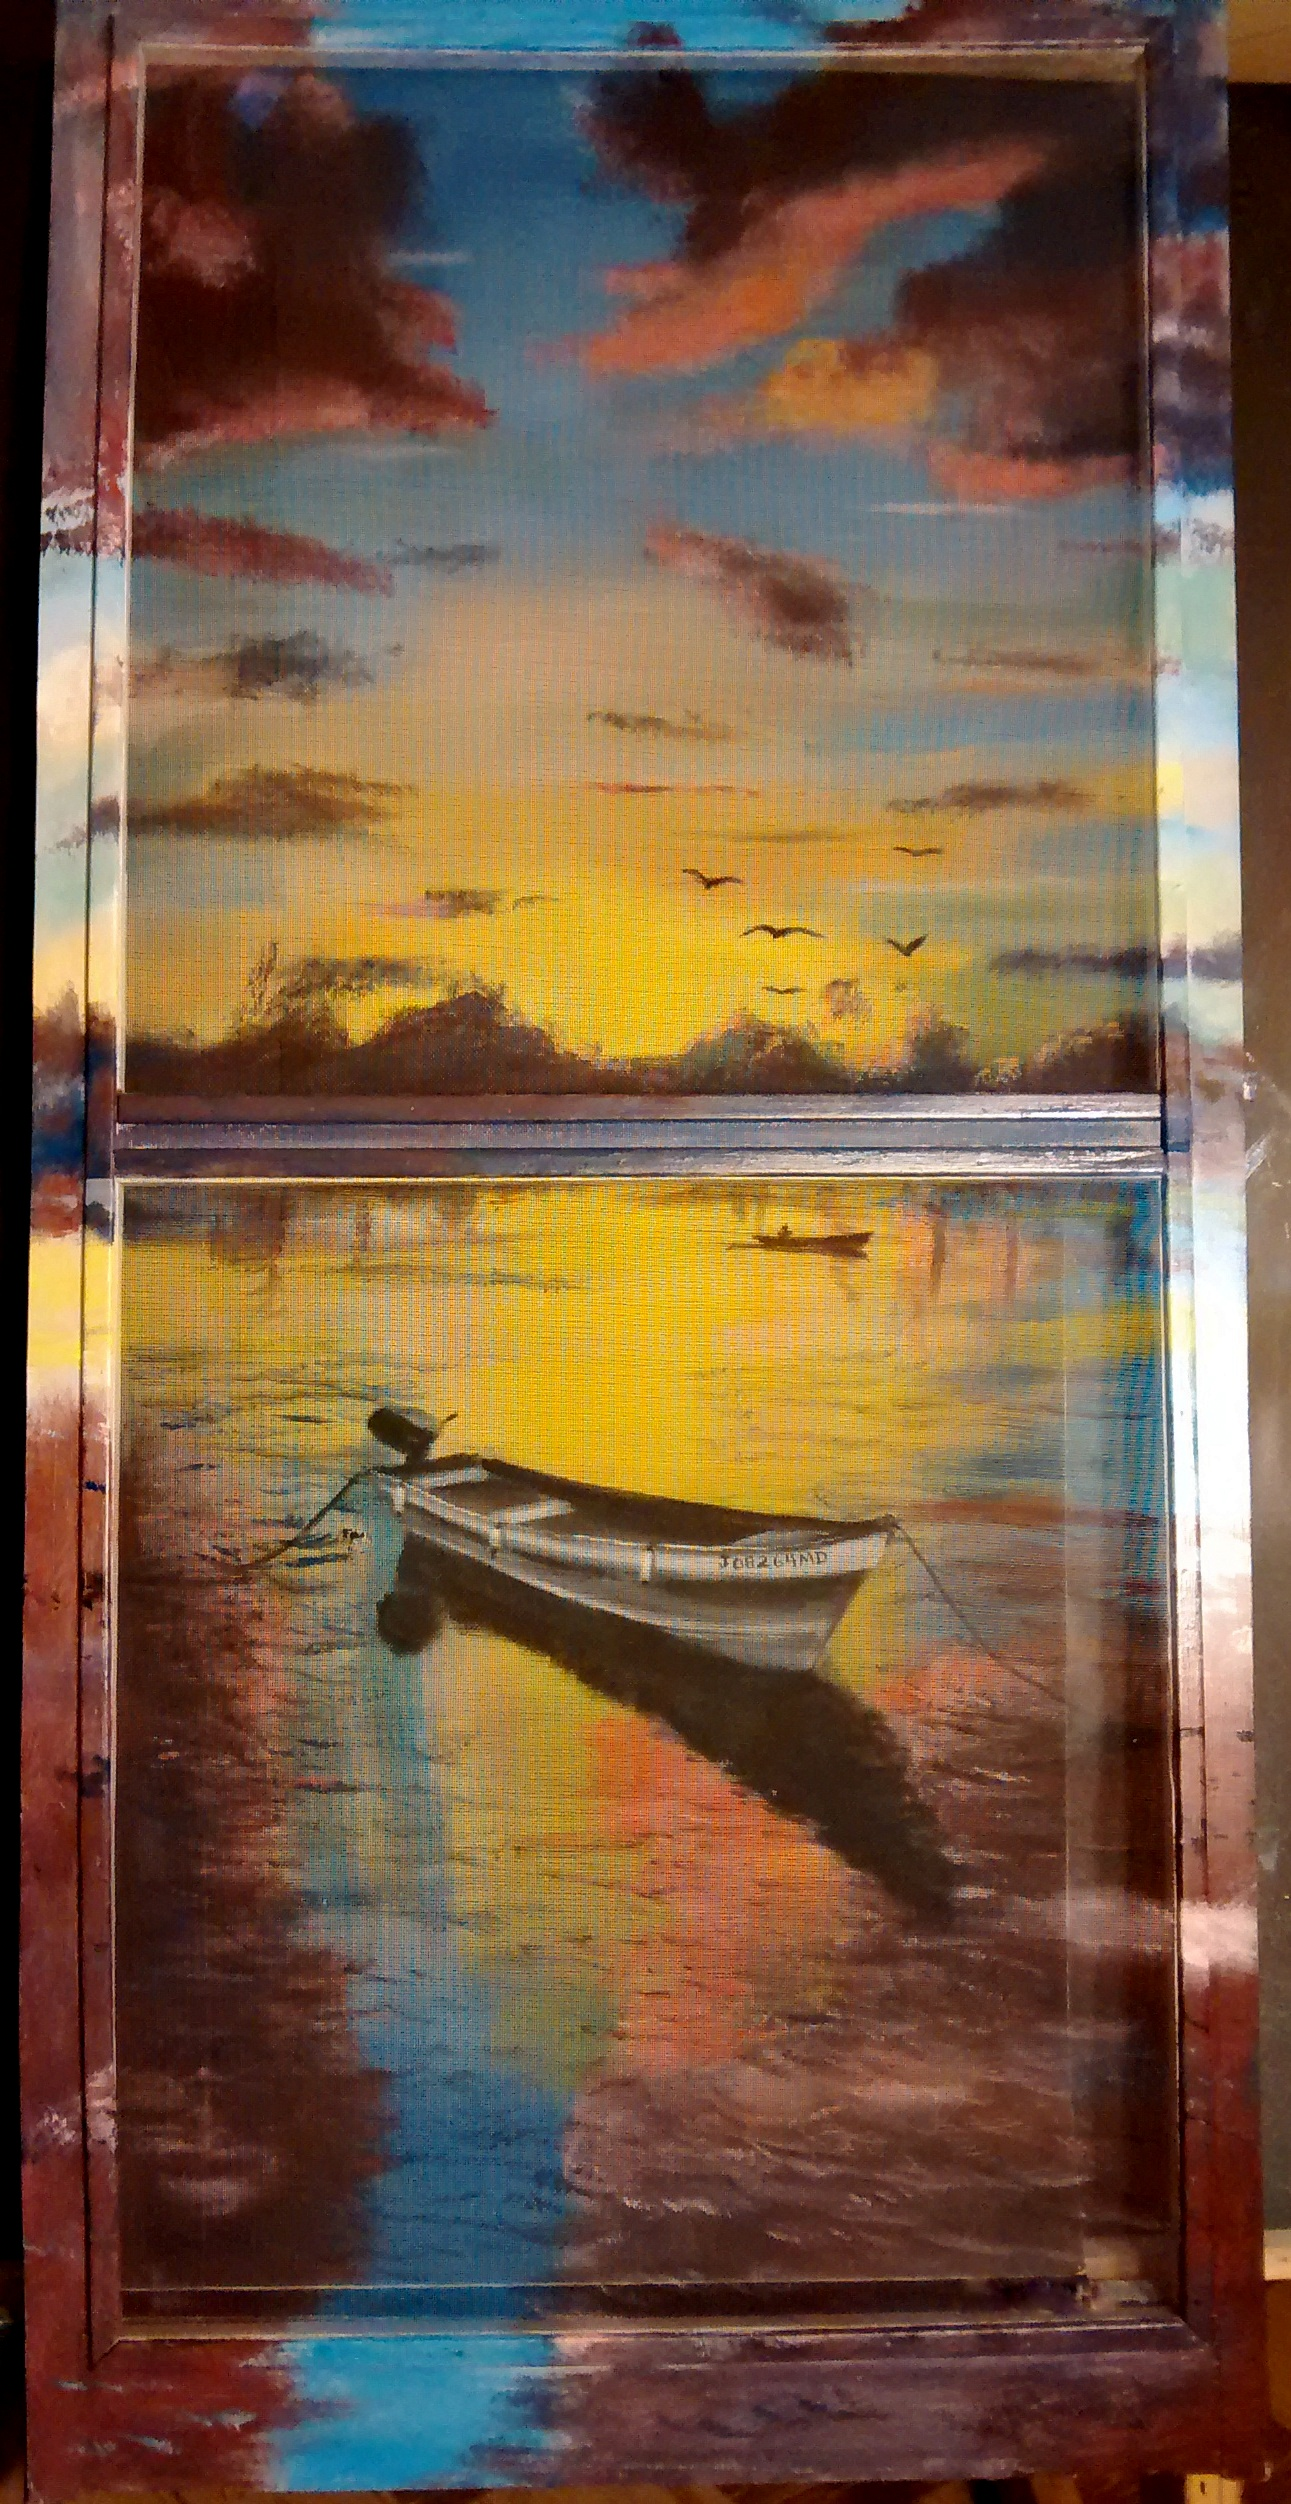 Window screen painting of an anchored boat against a glowing sunset